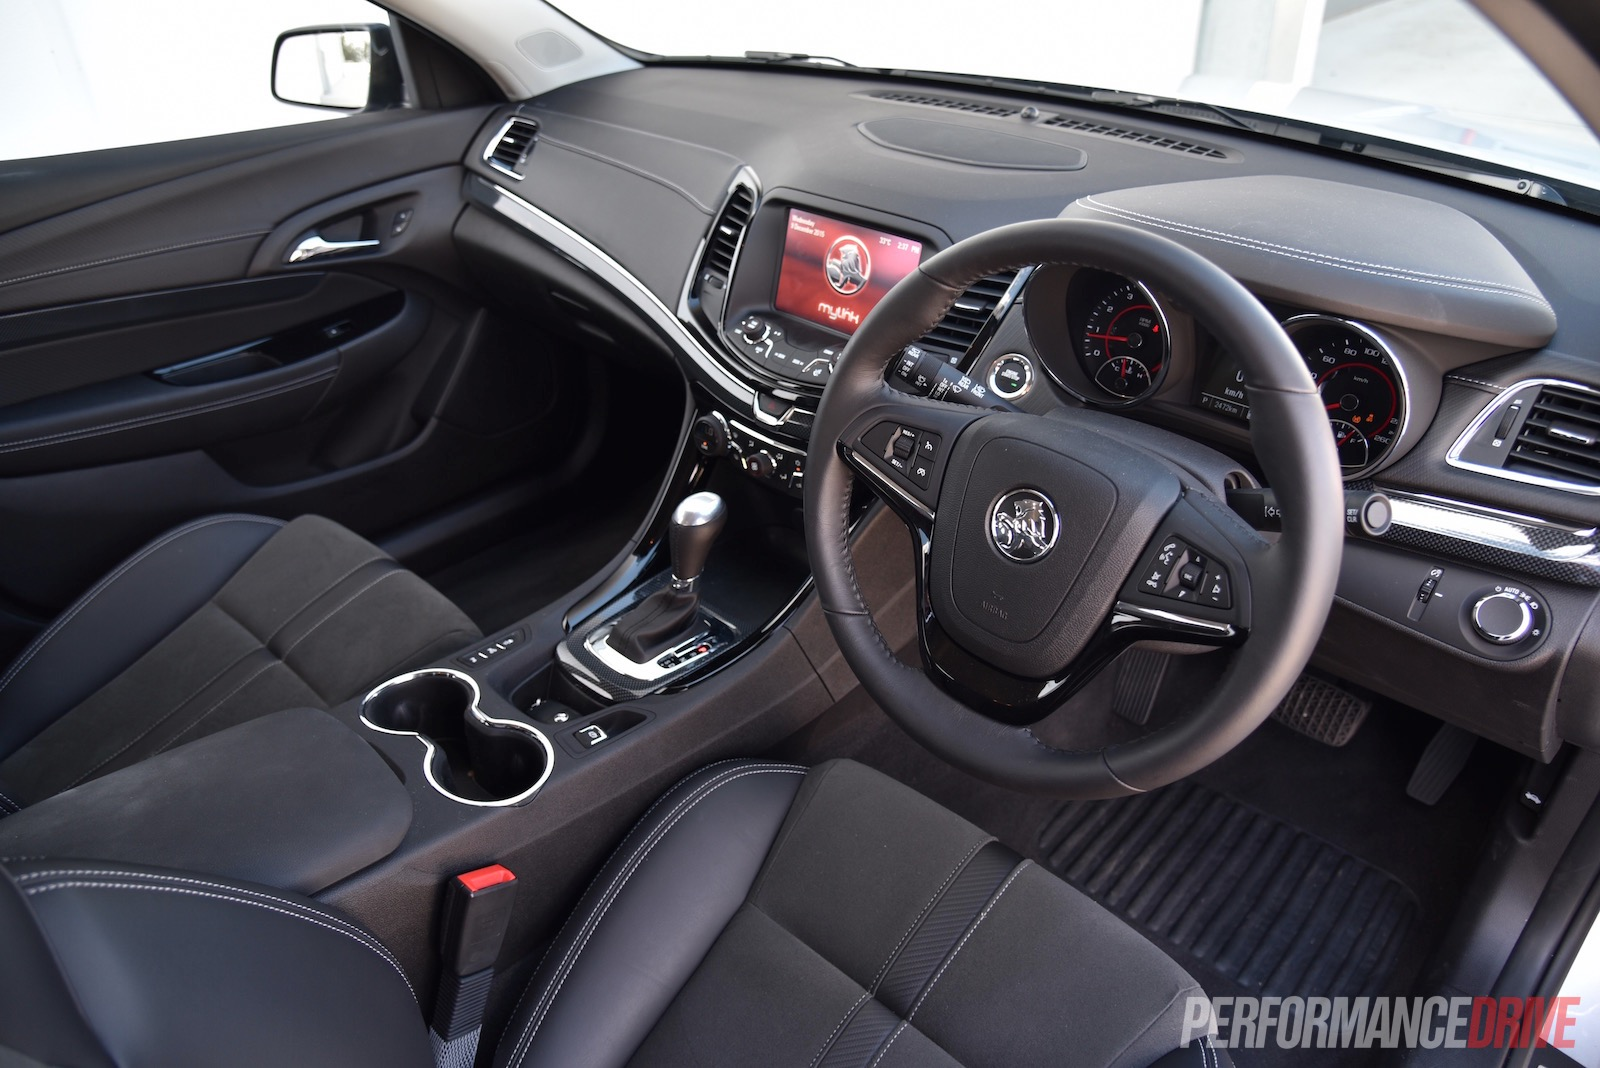 vz commodore sv6 how to use the paddle shift